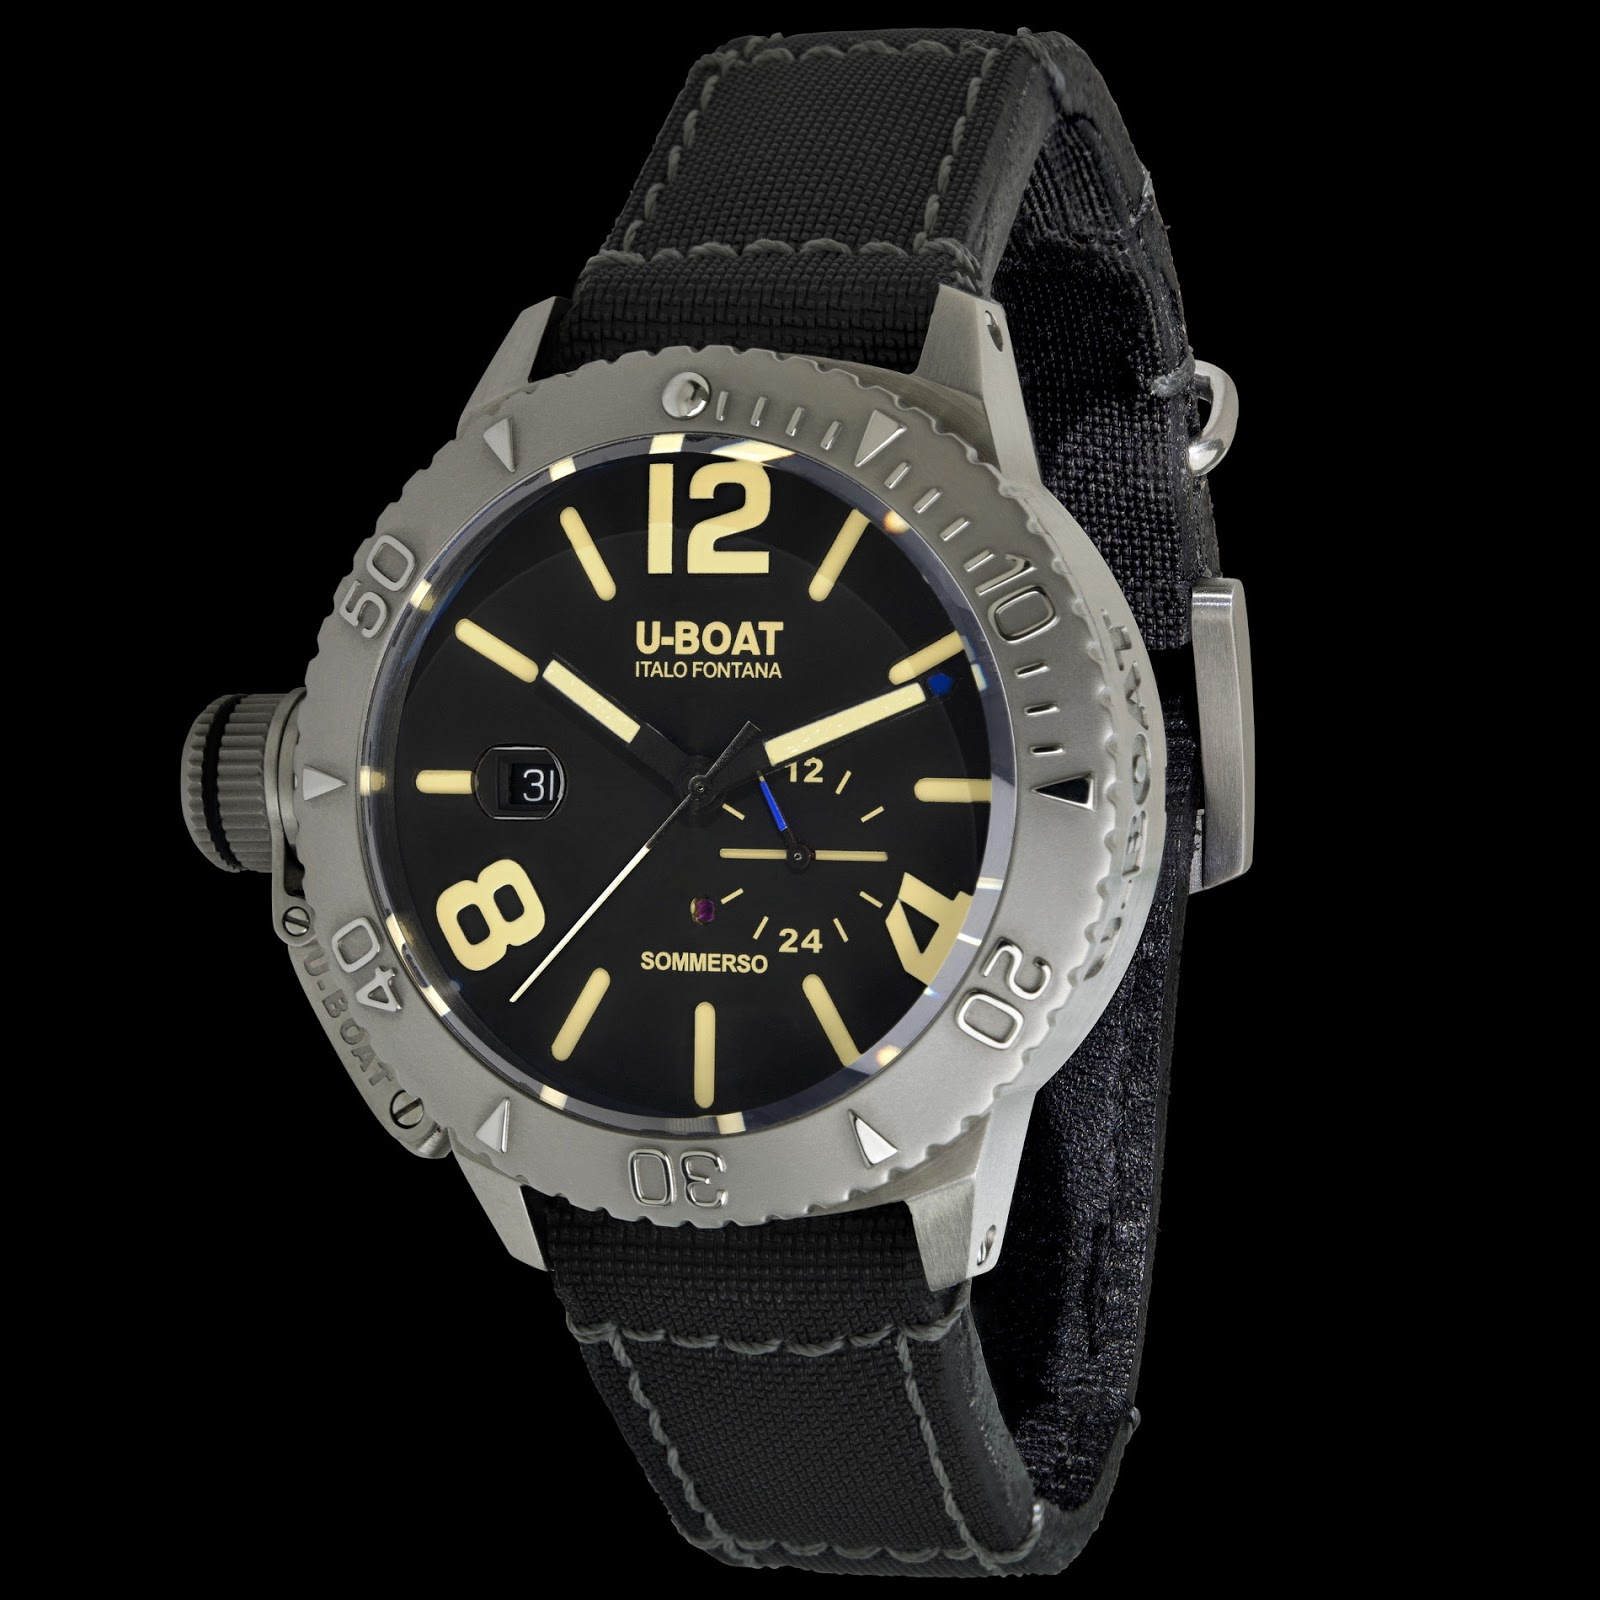 u boat sommerso  OceanicTime: U-BOAT Sommerso 300M